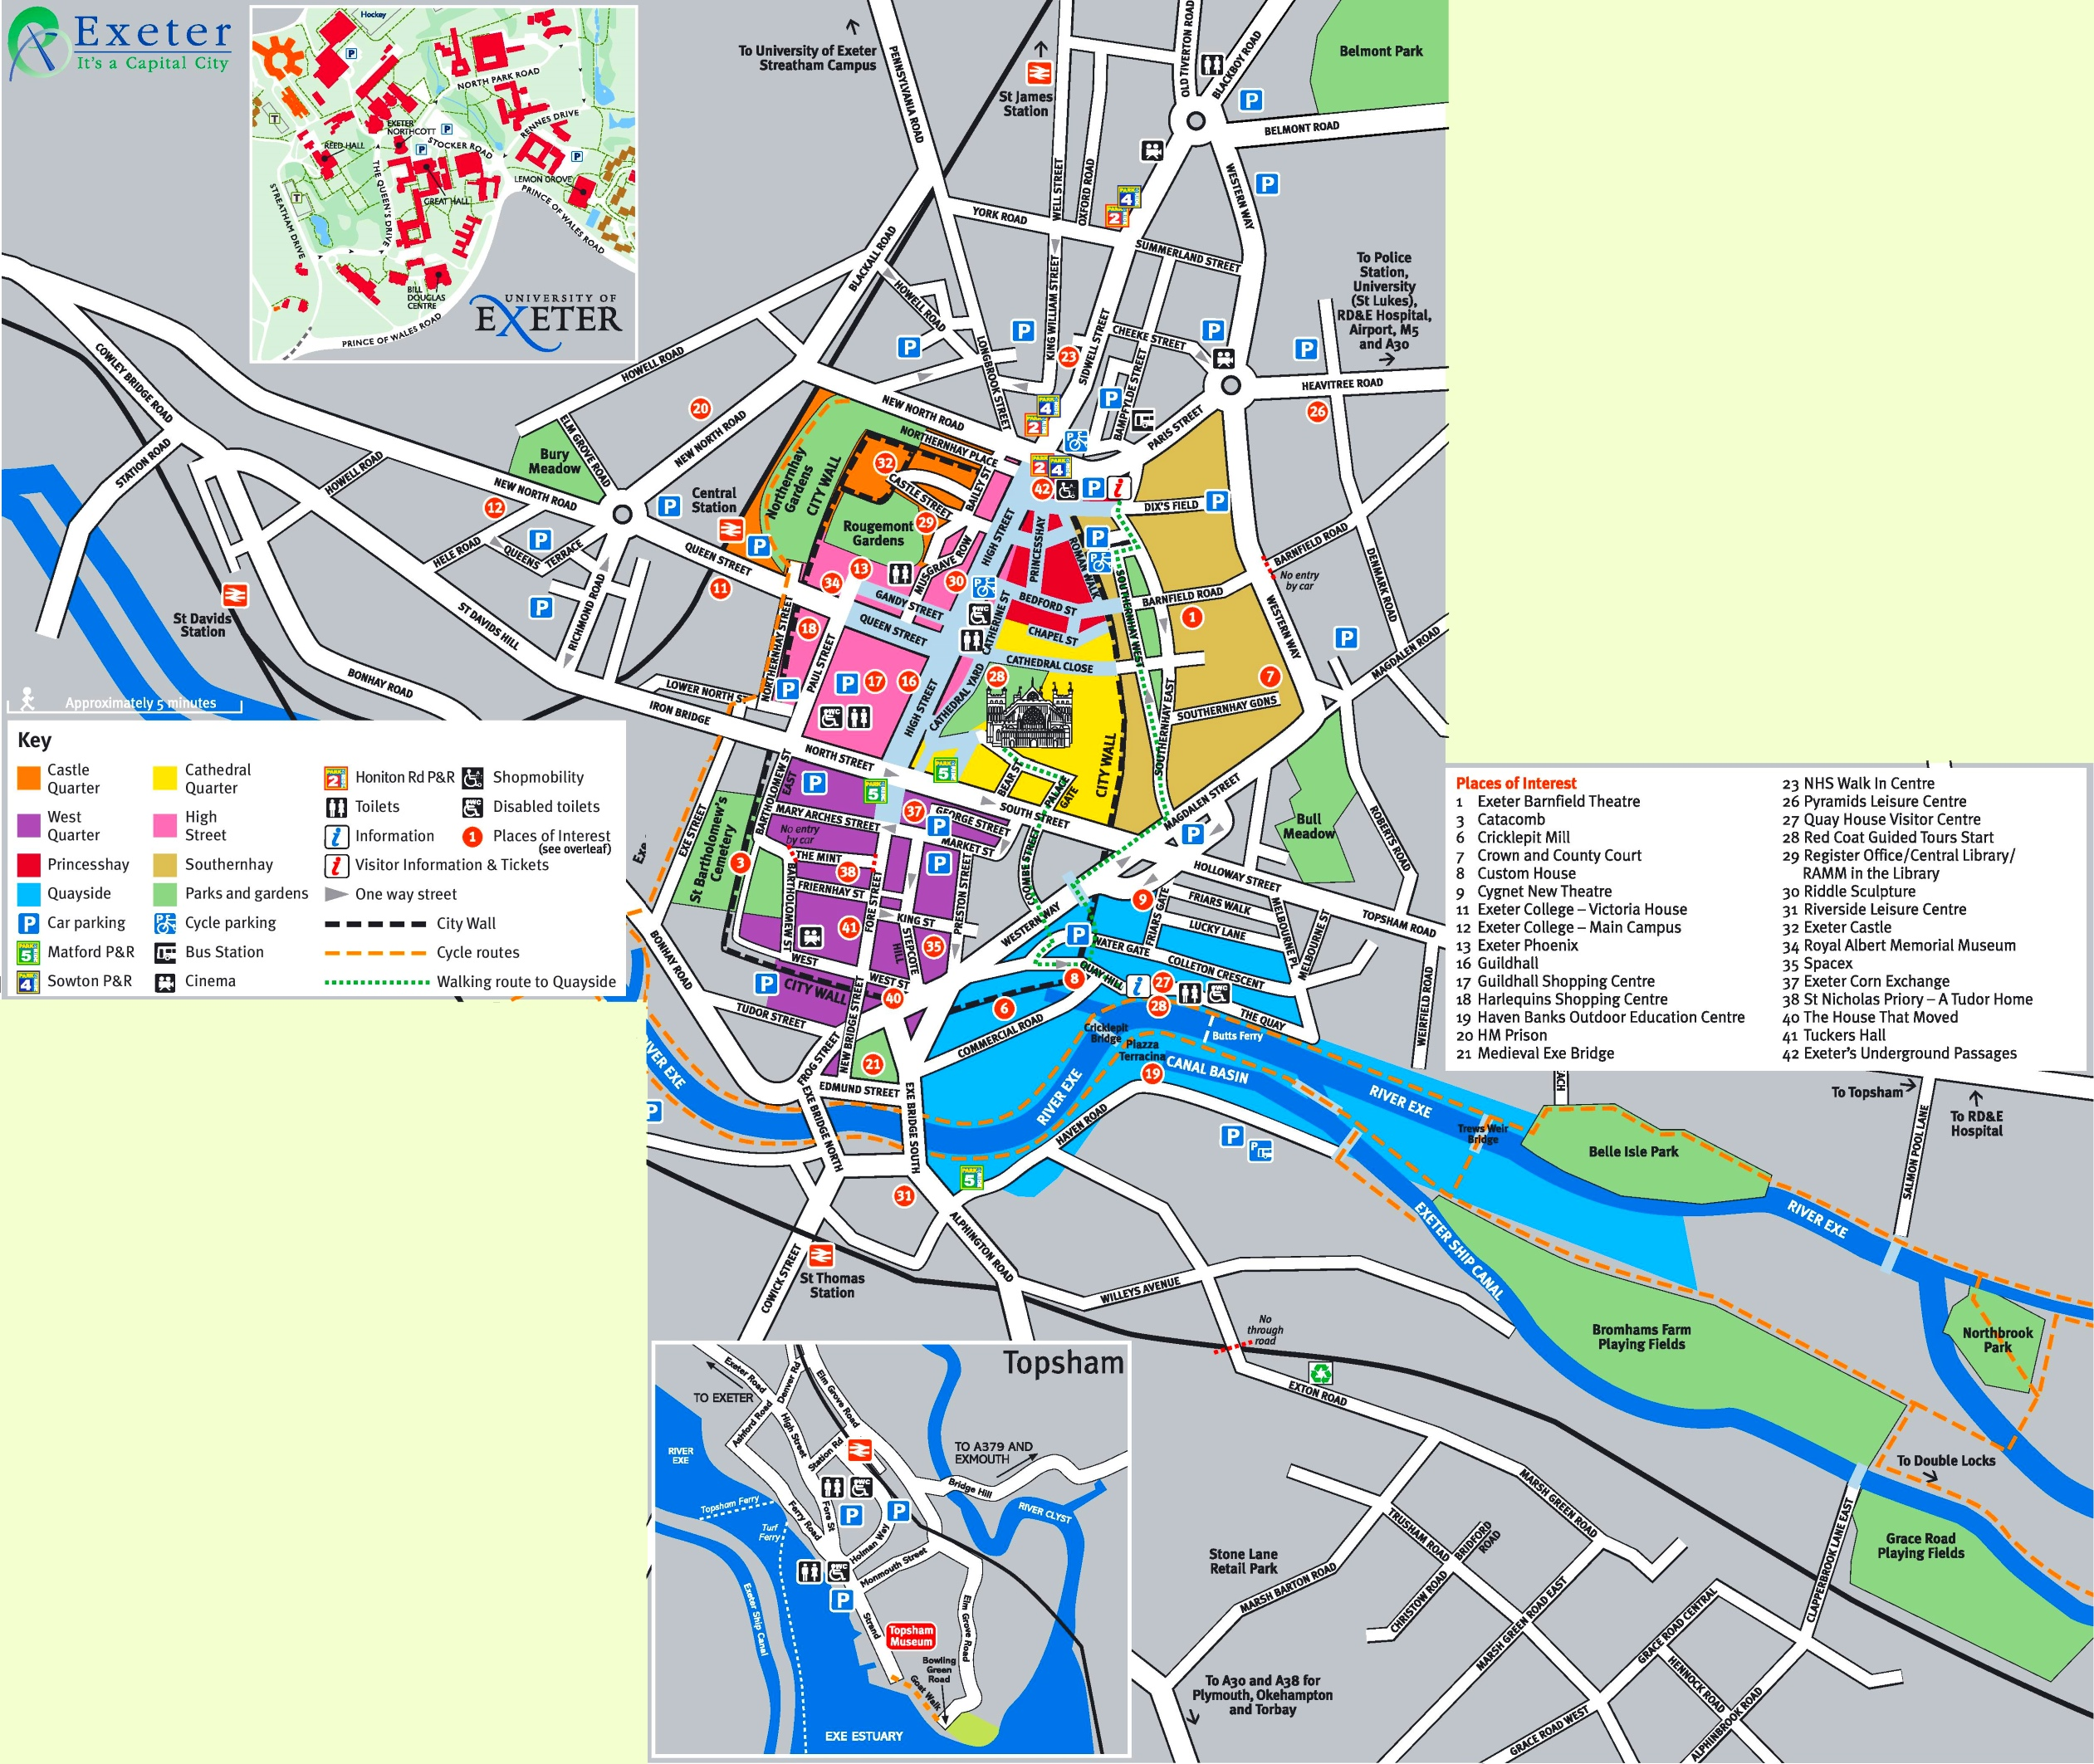 Exeter tourist map